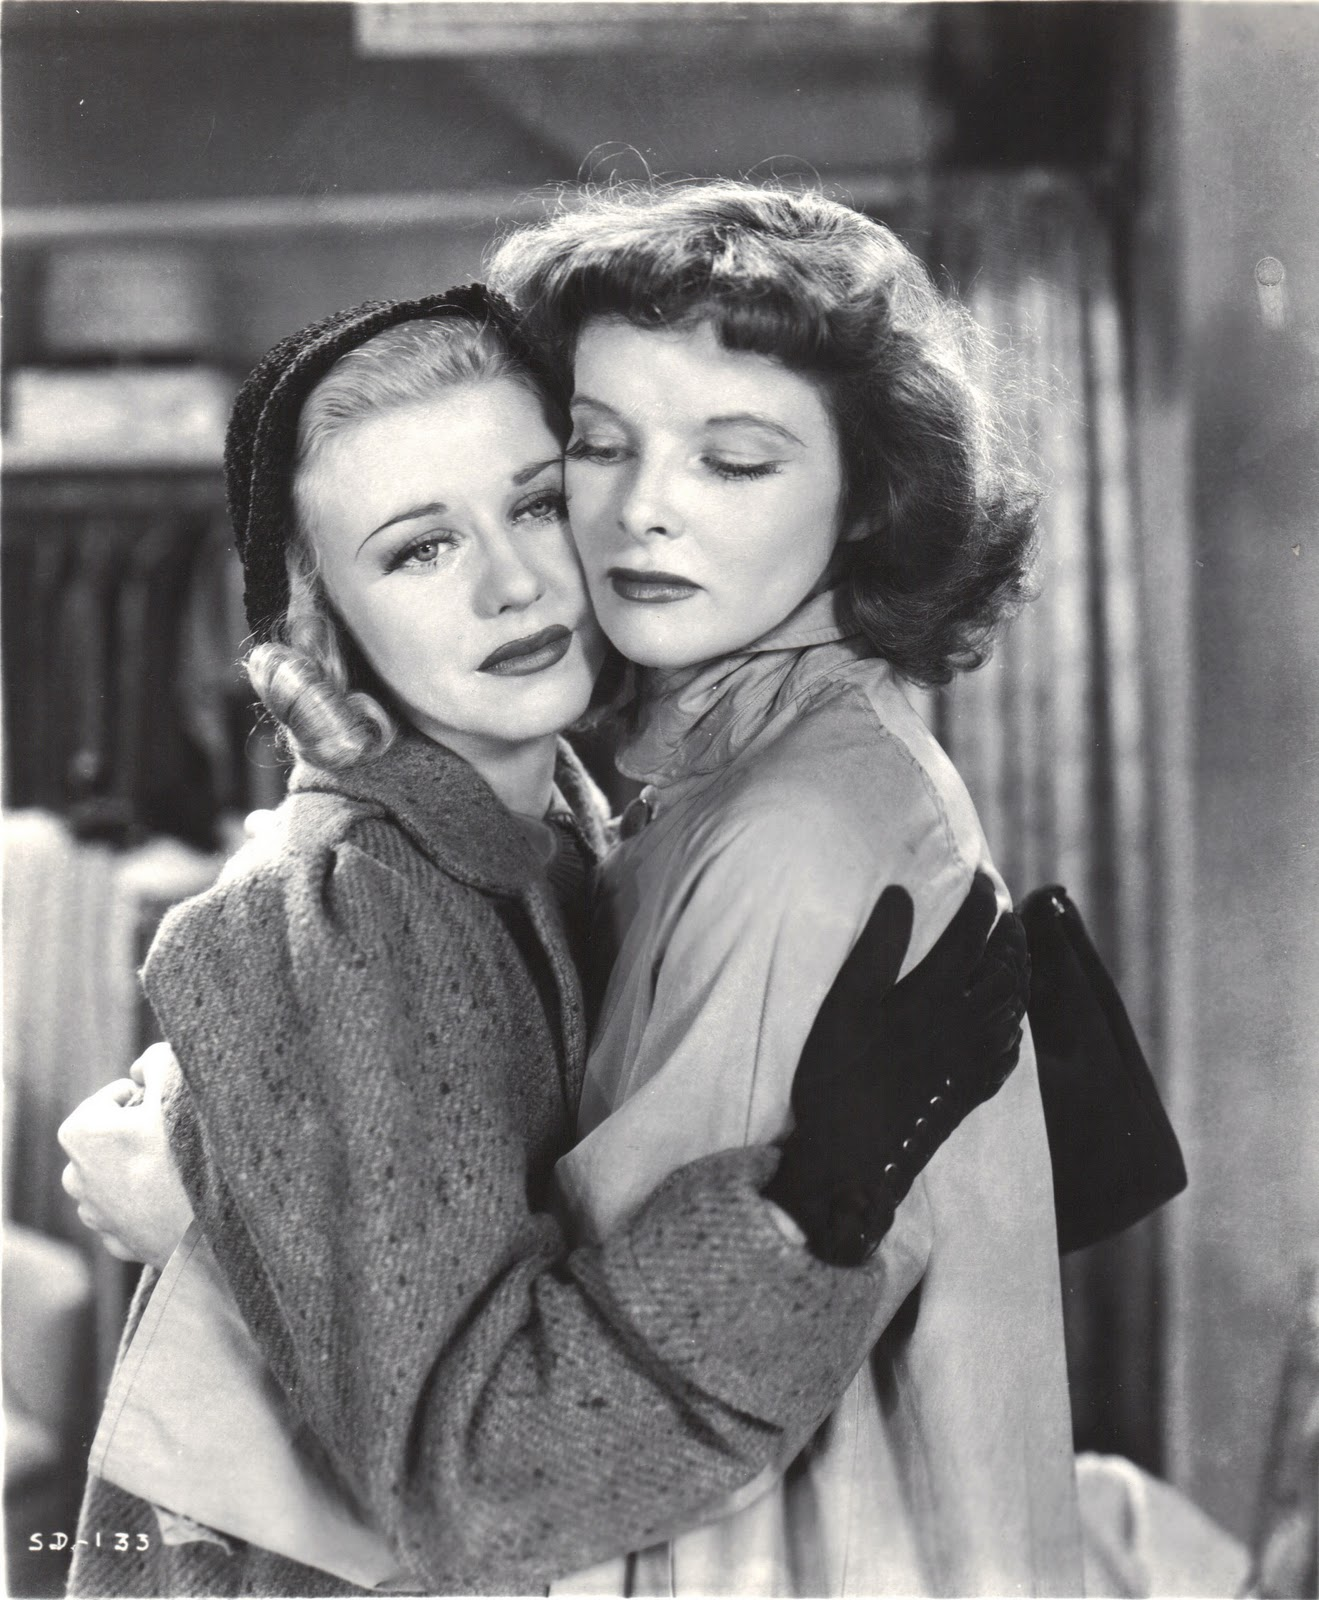 Jean Maitland (Ginger Rogers) receives a consoling hug from Terry Randall (Katharine Hepburn).